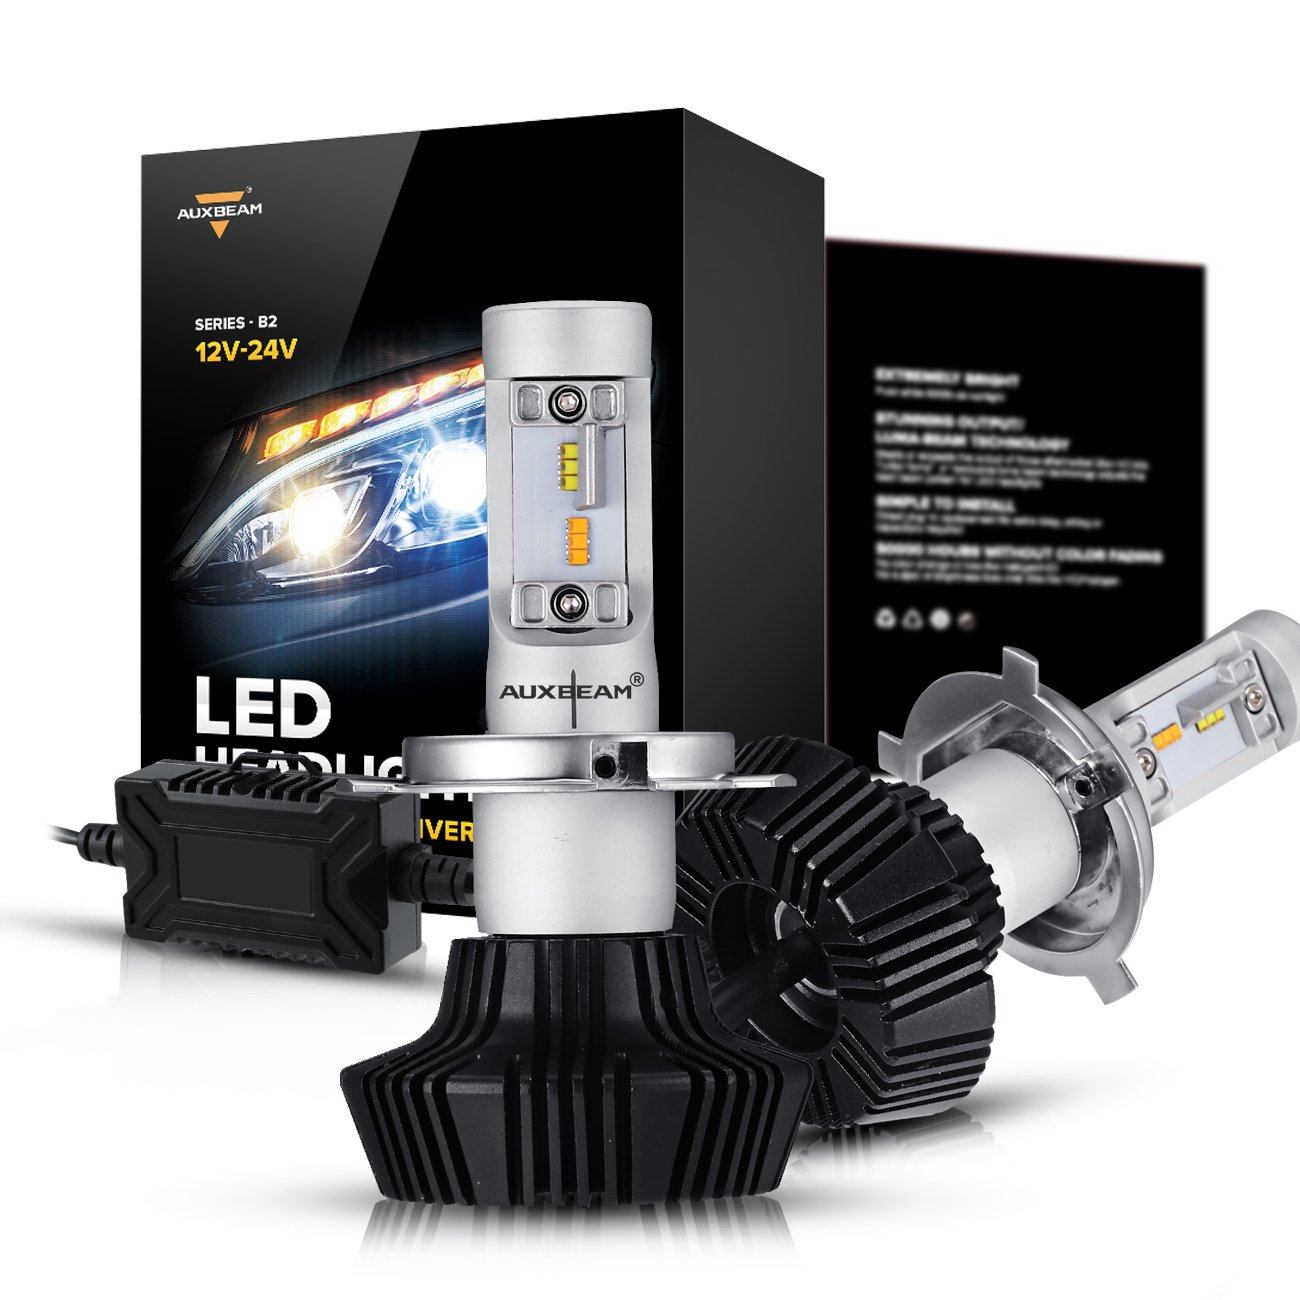 H4 Led Bulb Wiring Diagram Auxbeam Nf B2 Series Headlight Bulbs Bi Color Conversion Kit With 2 Pcs Of 50w 4000lm Philips Chips Hi Lo Beam